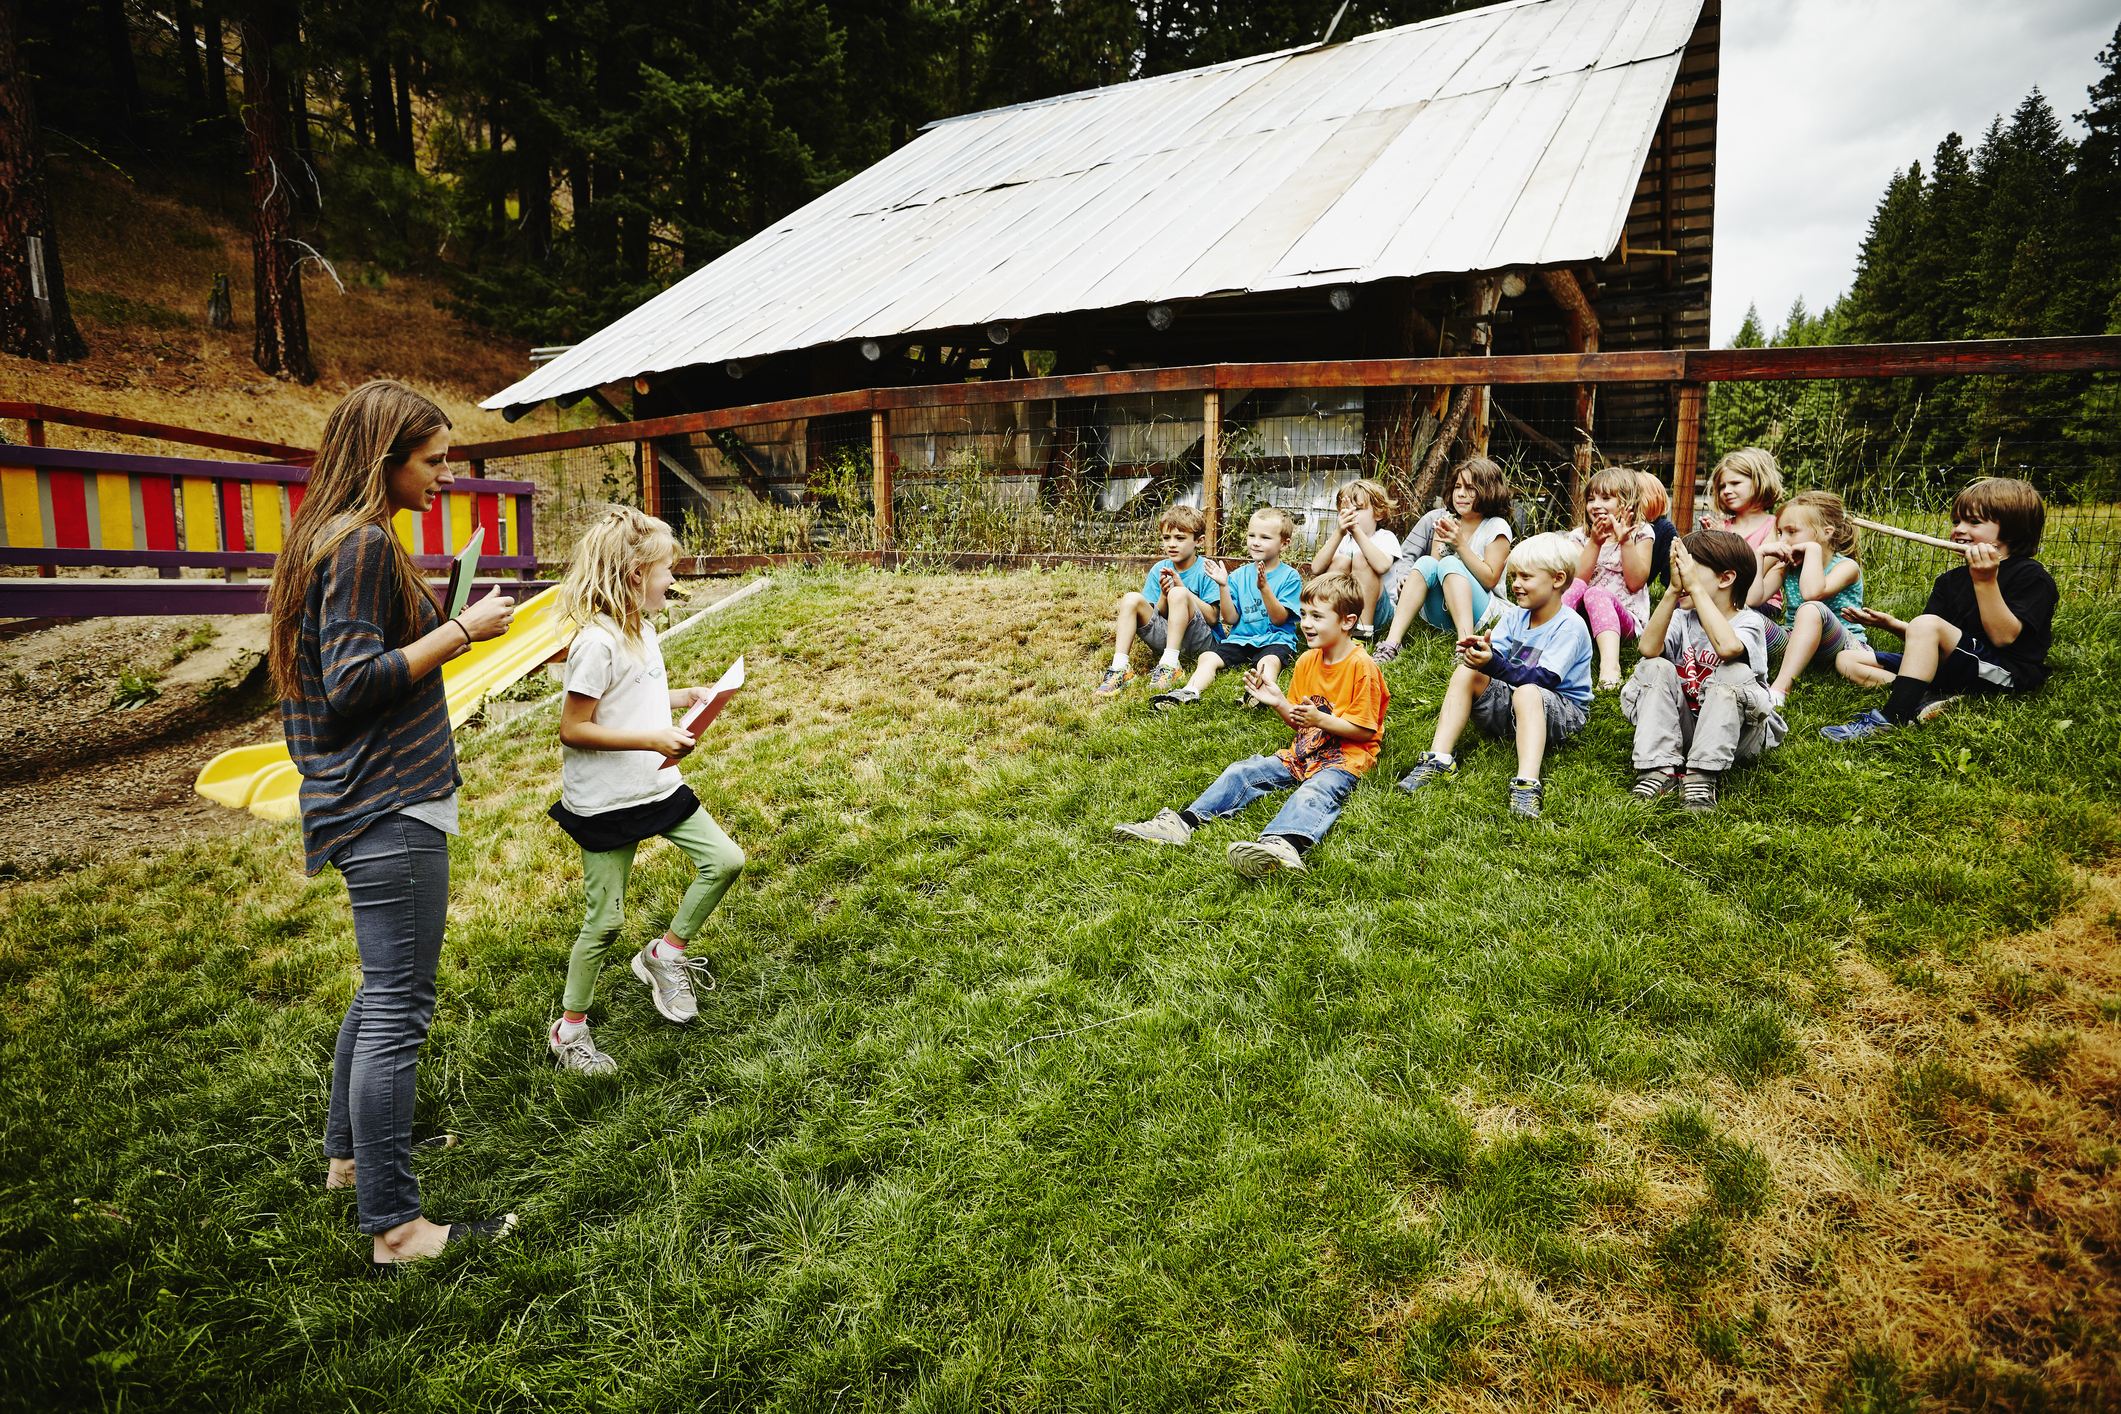 Summer Bible Camp Themes   LoveToKnow